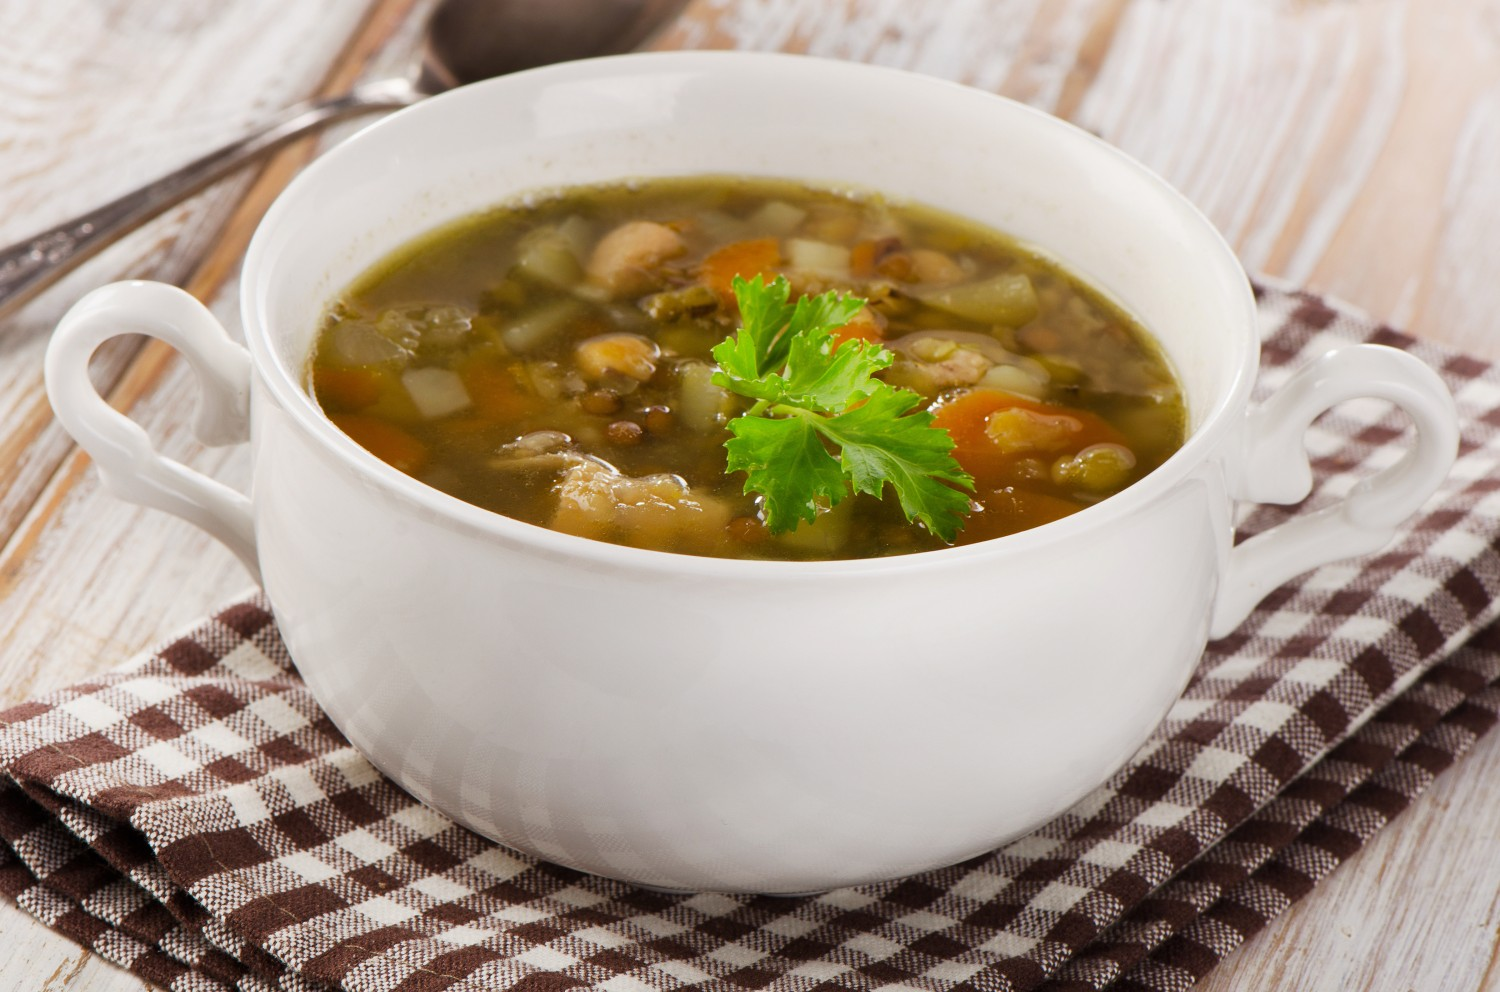 Image for Greens and Pork Soup